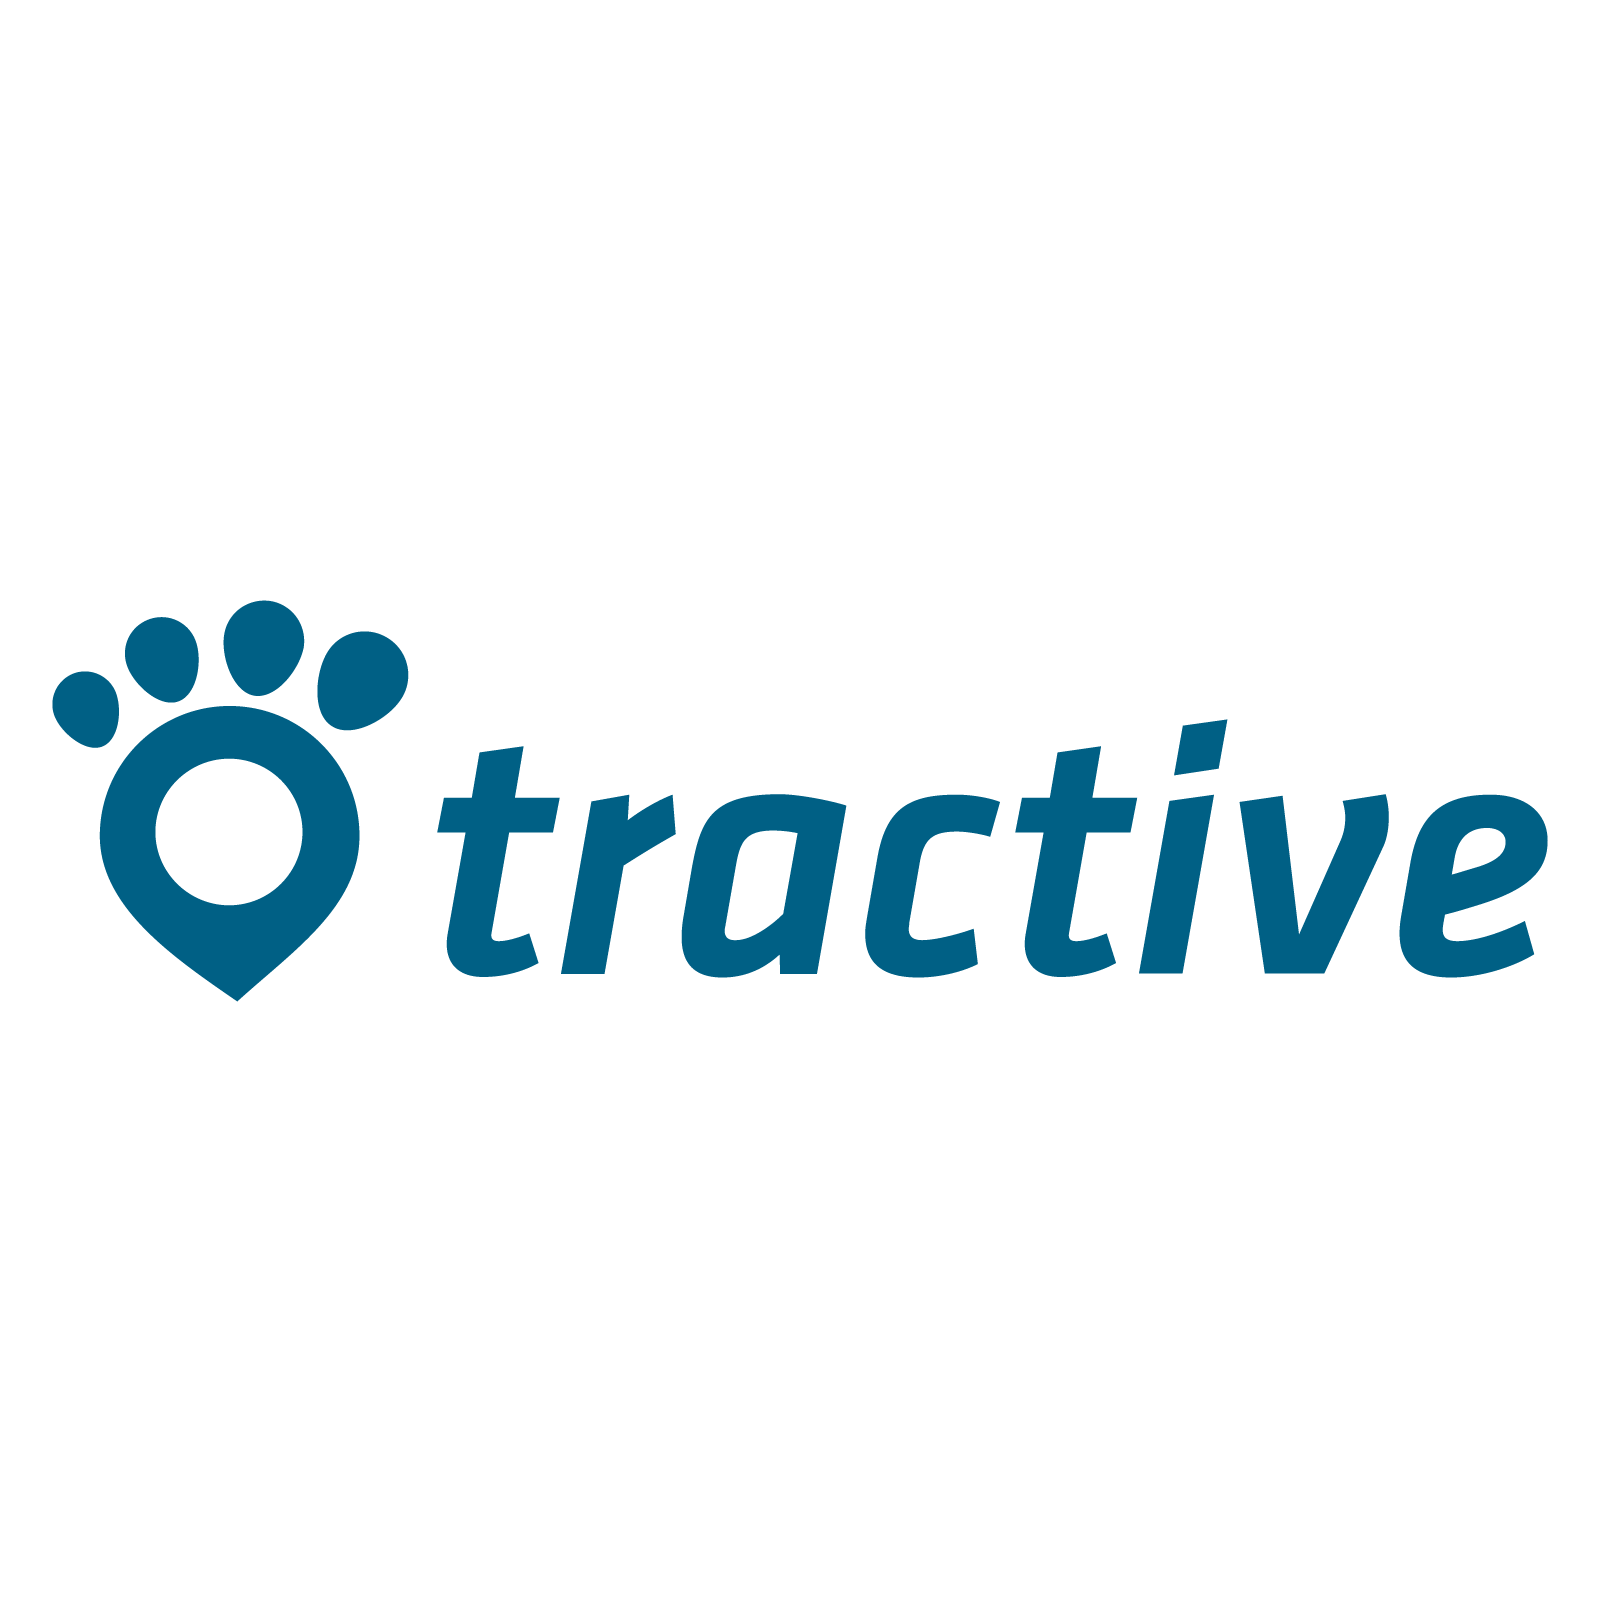 tractive_logo_solid_square.png